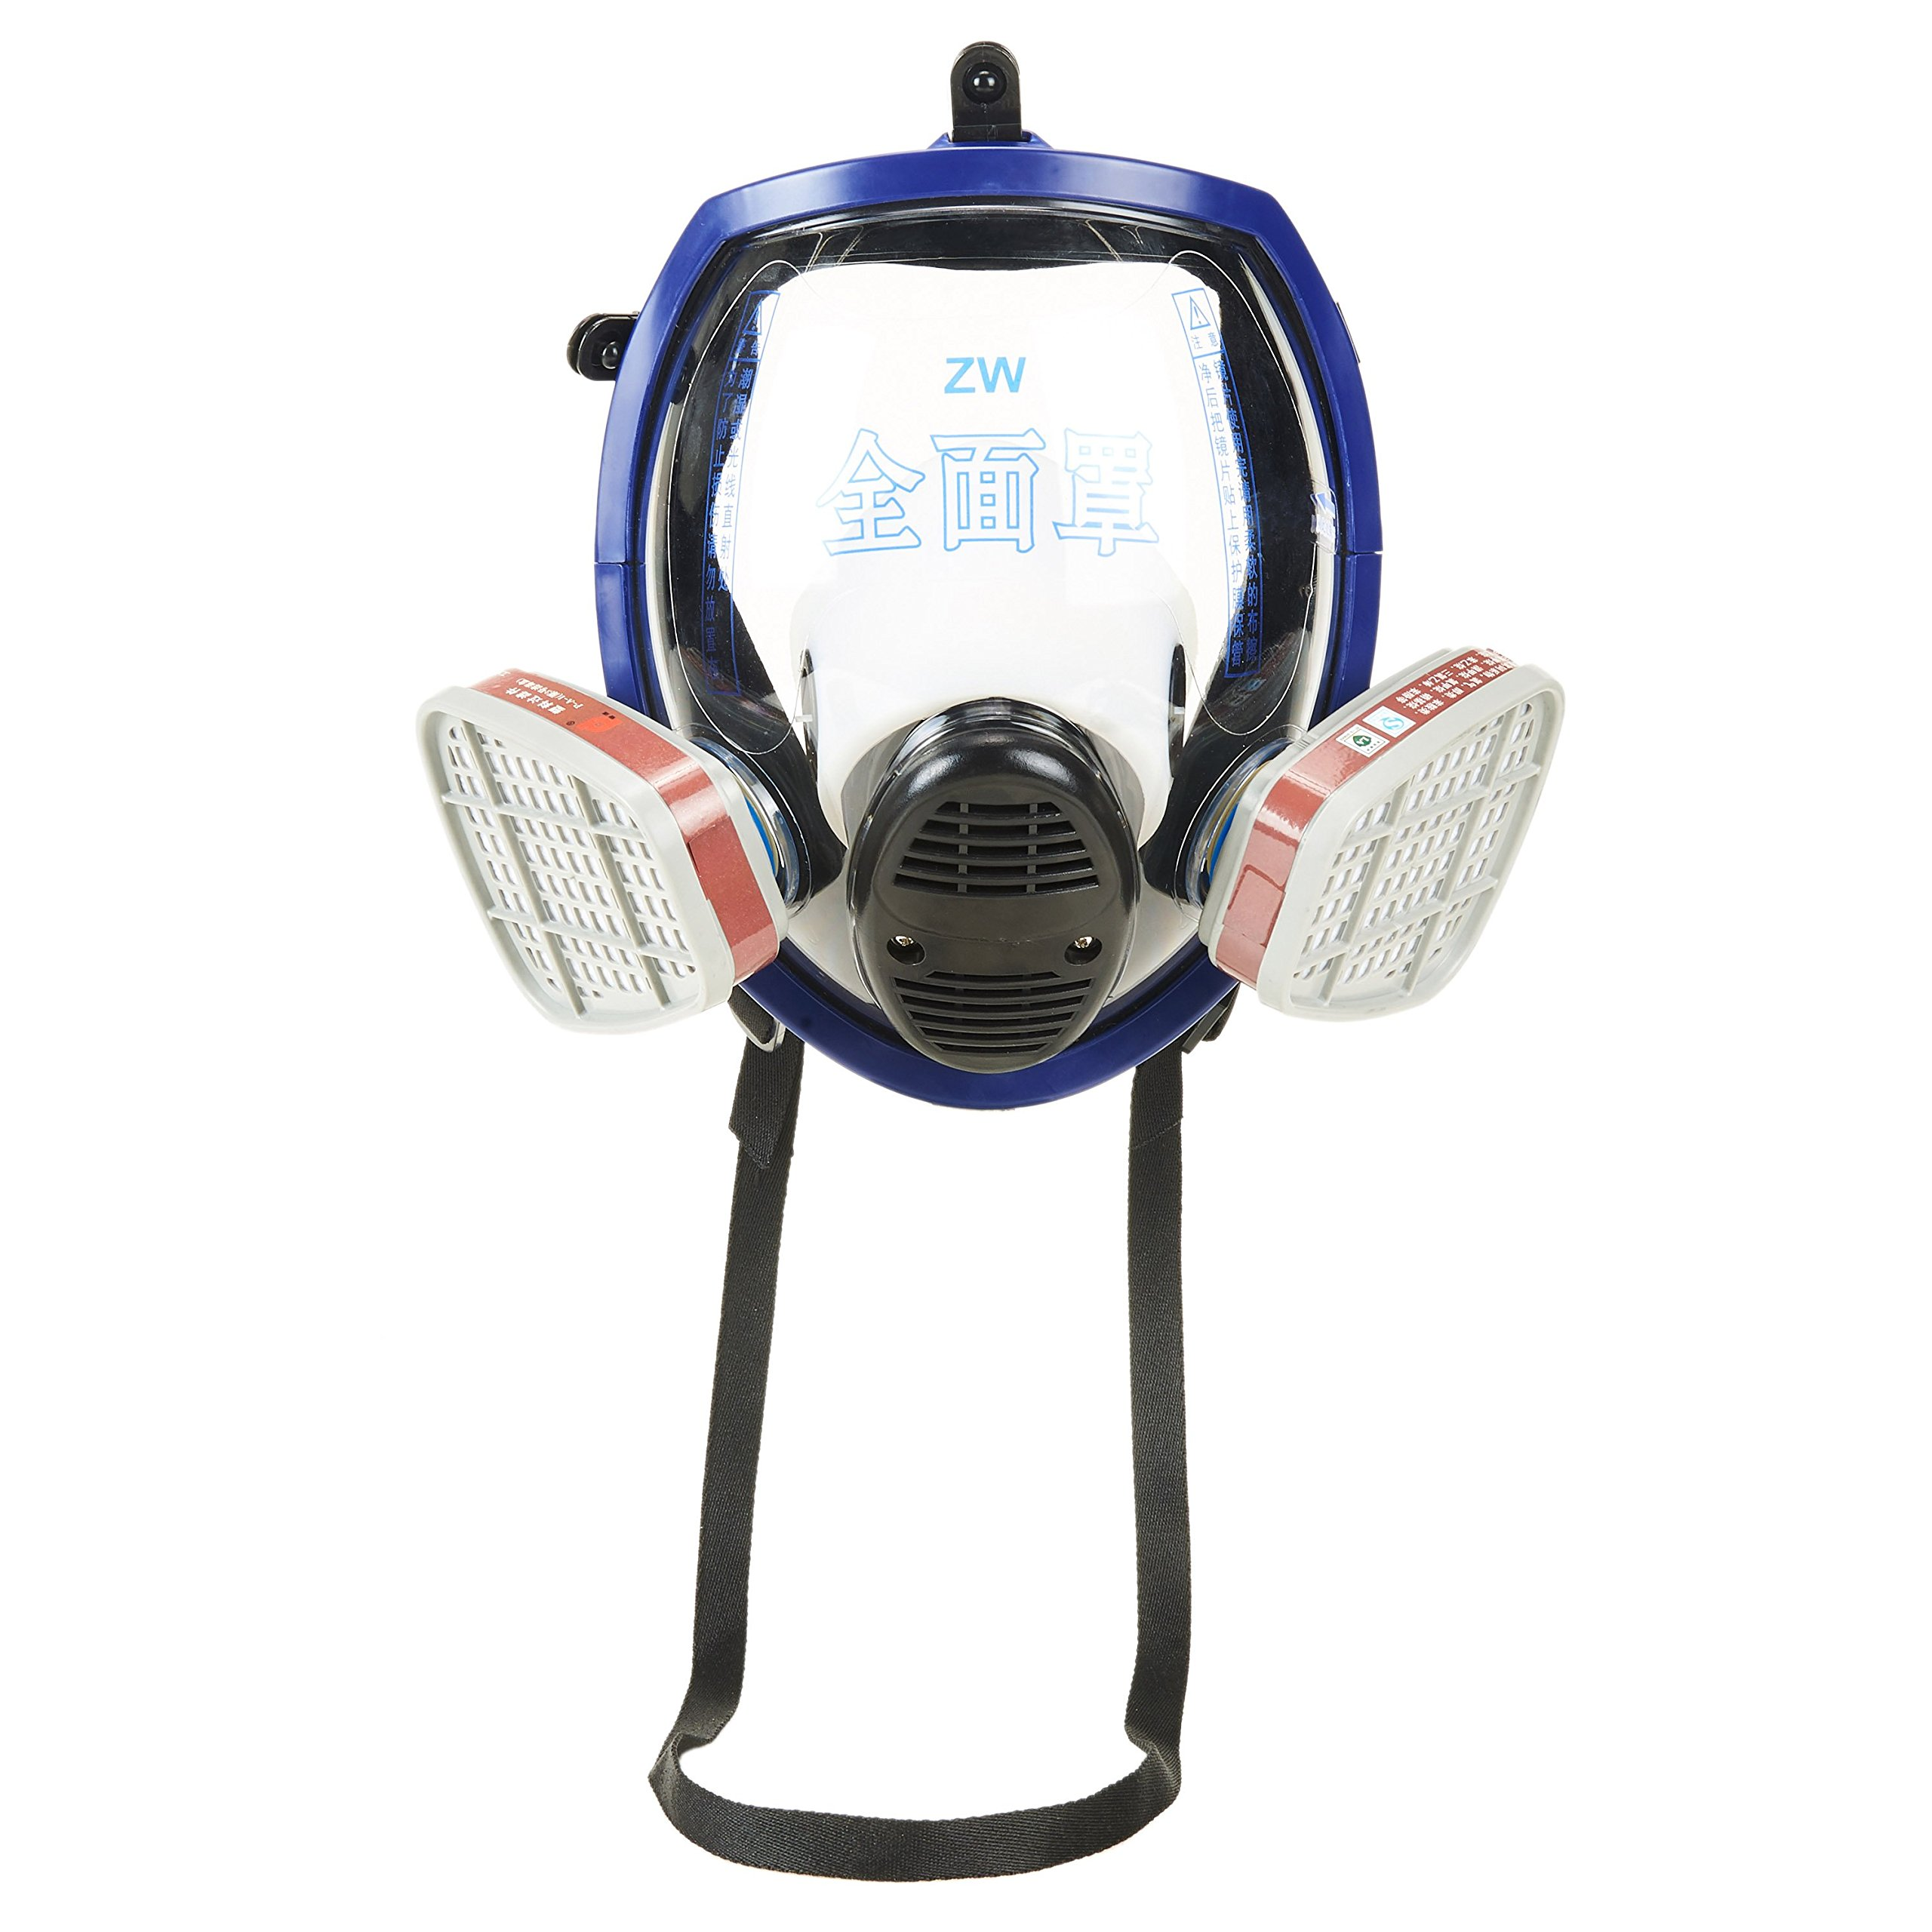 Holulo Organic Vapor Full Face Respirator With Visor Protection For Paint, chemicals, polish welding protection by Holulo (Image #6)